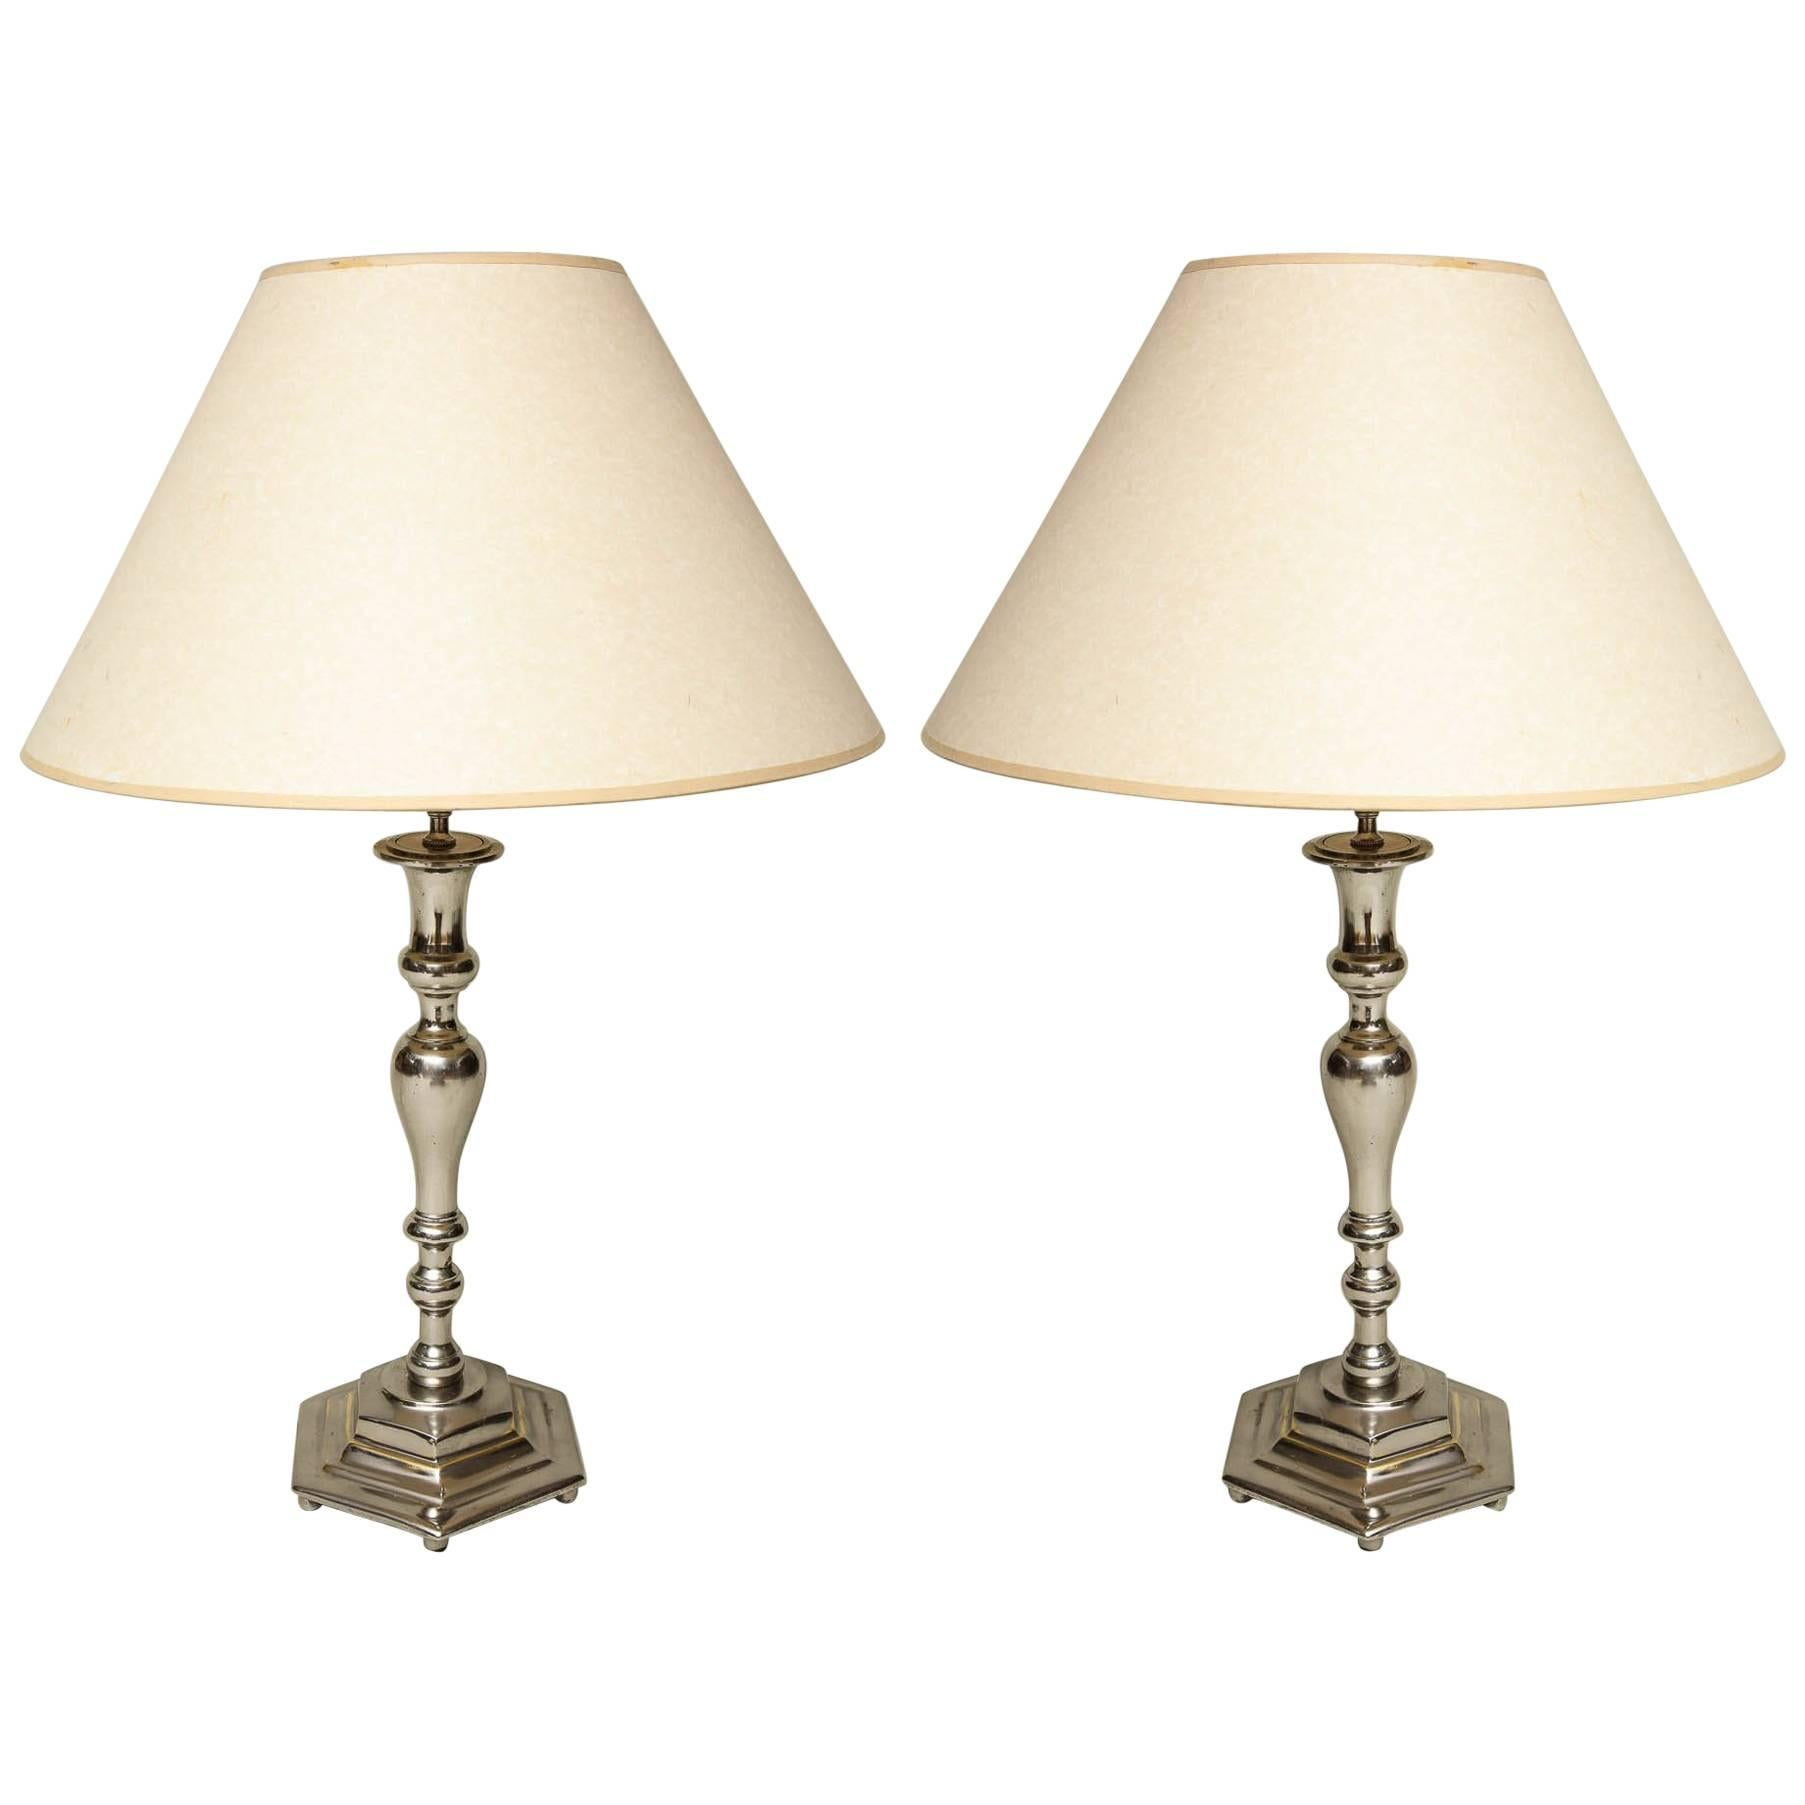 Silvered Tabletop Lamps For Sale